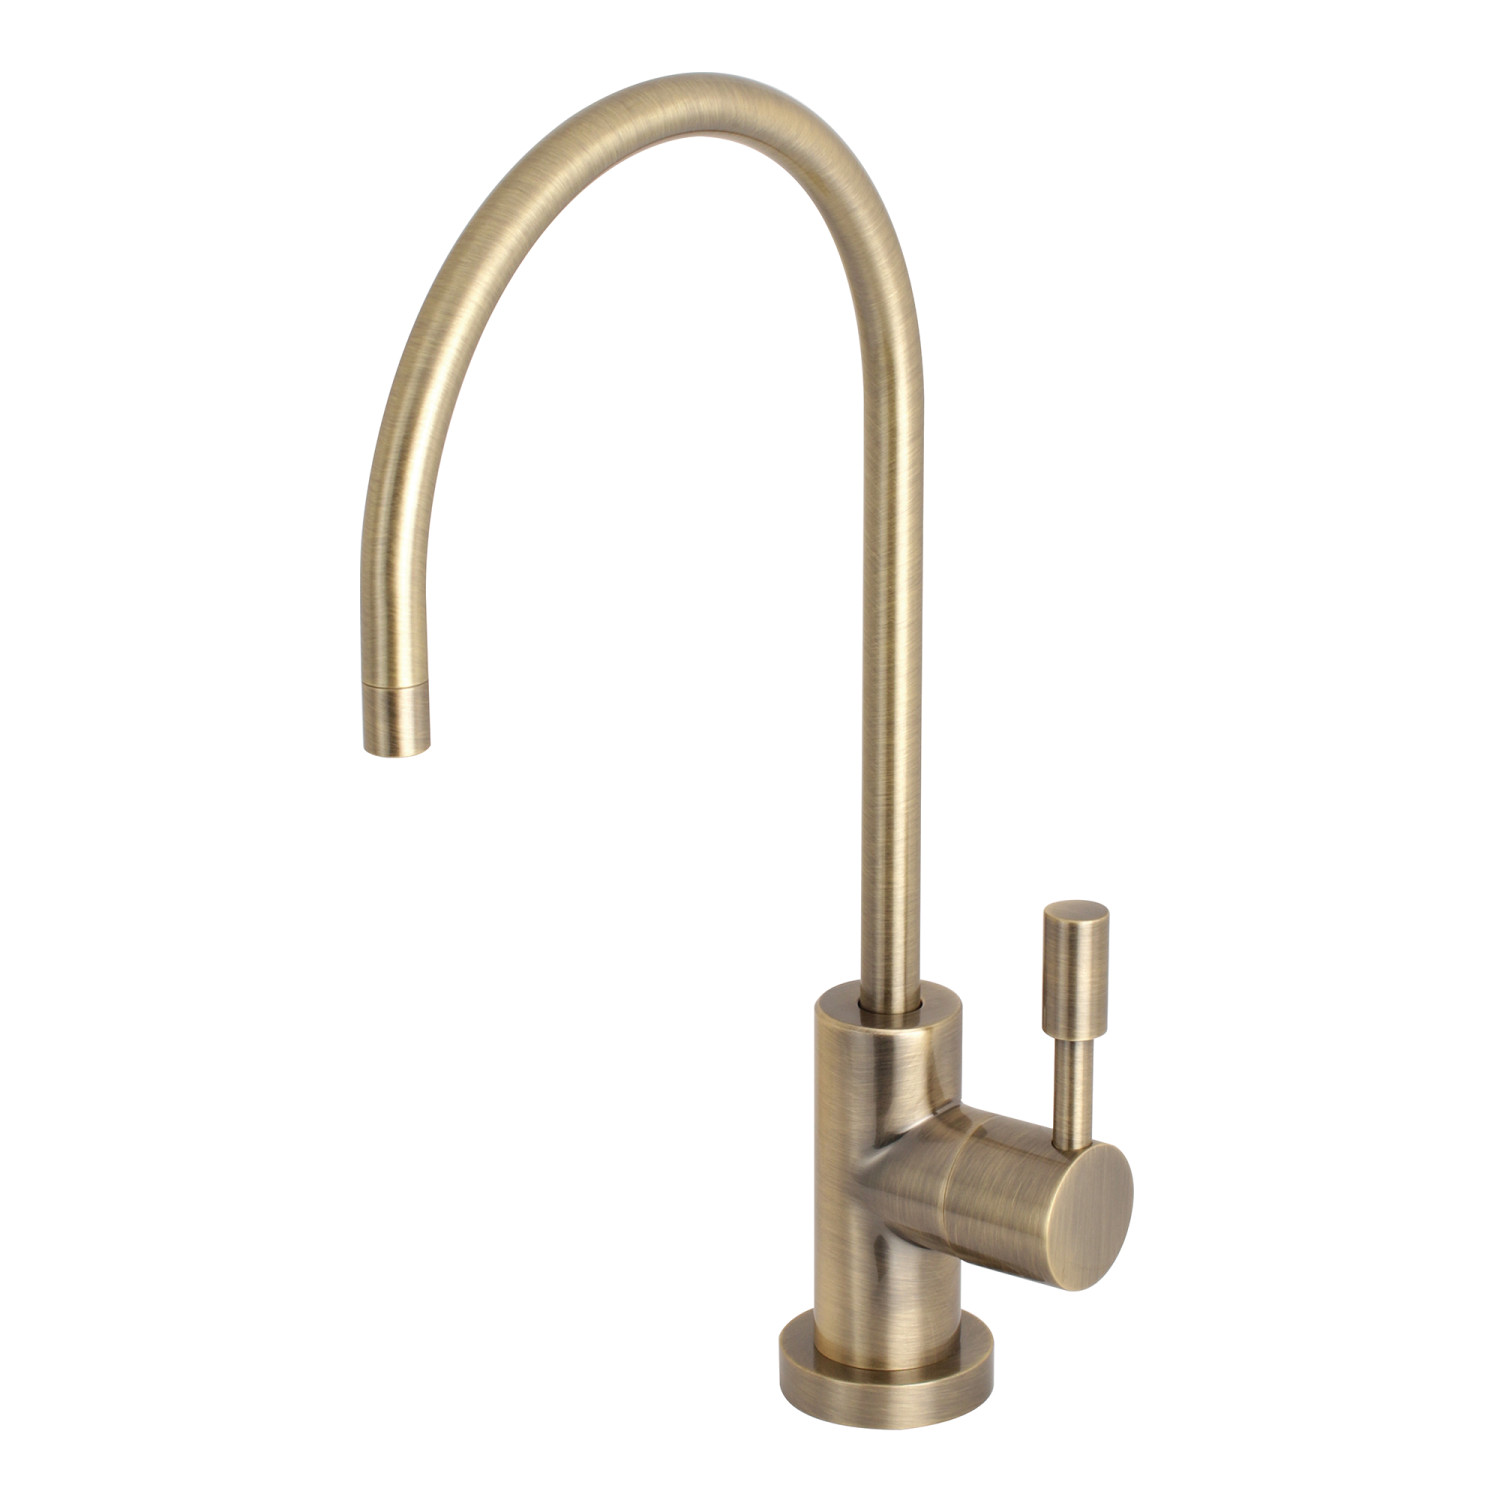 filter osmosis left circle system water drain reverse box view open filtration collar faucet with faucets